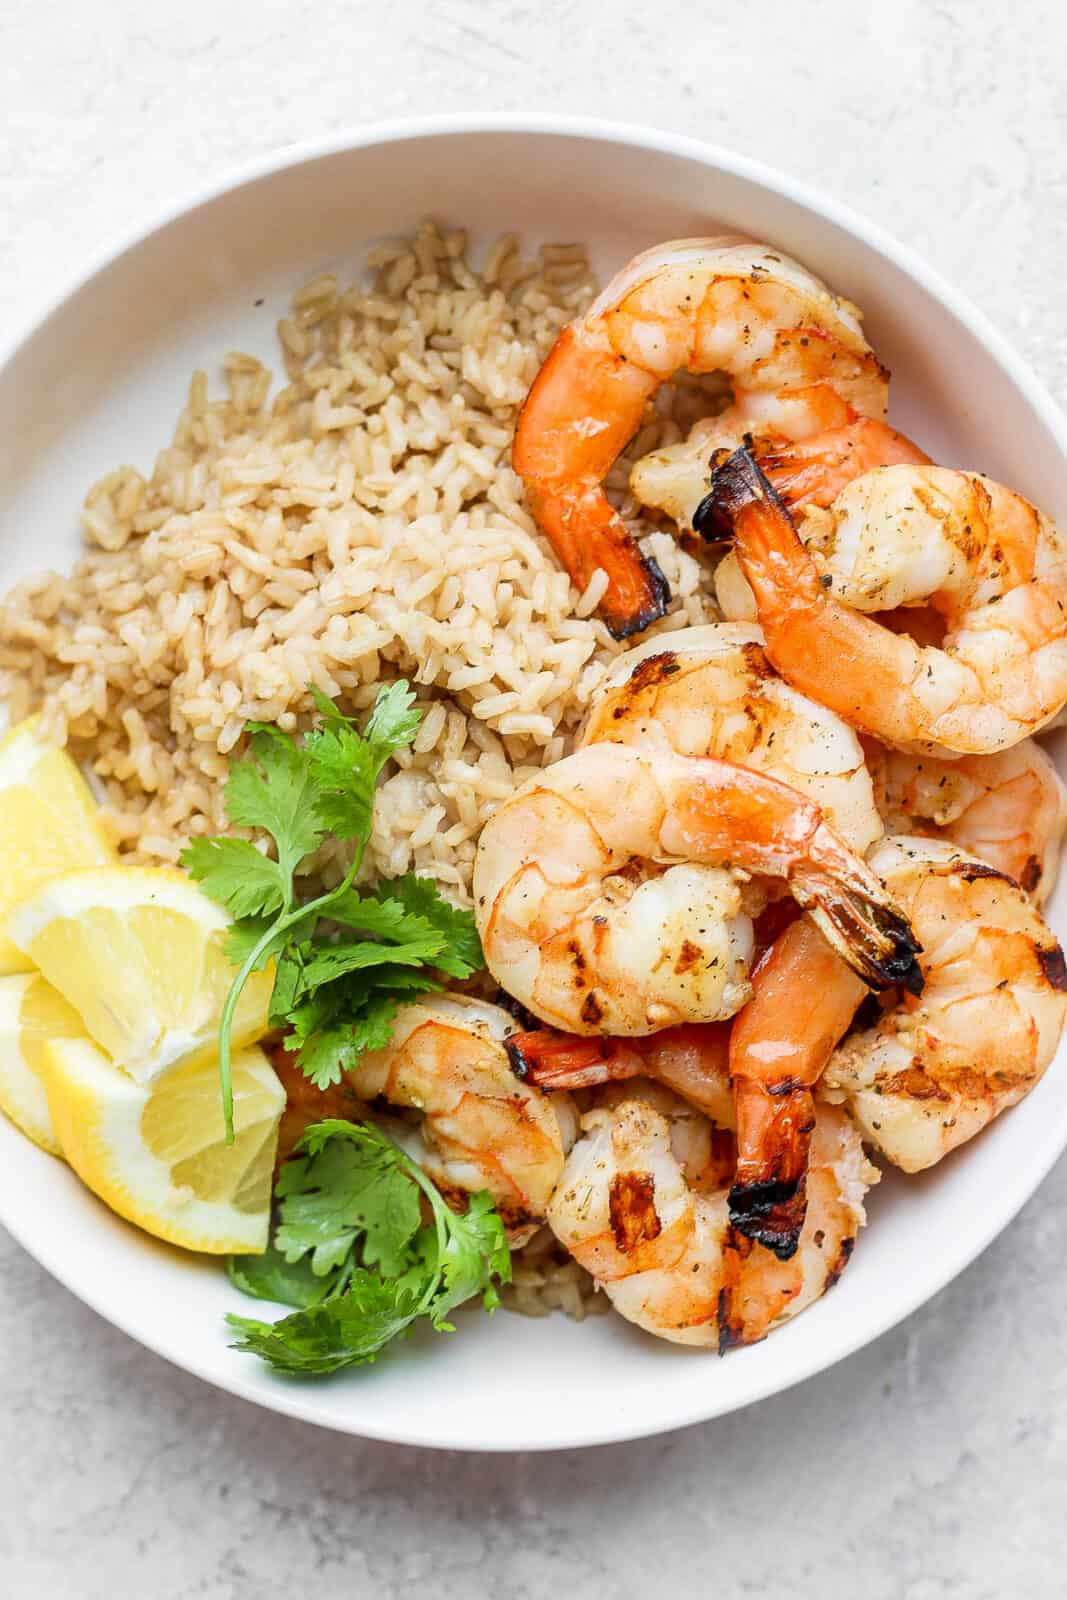 Grilled shrimp in a bowl with brown rice.